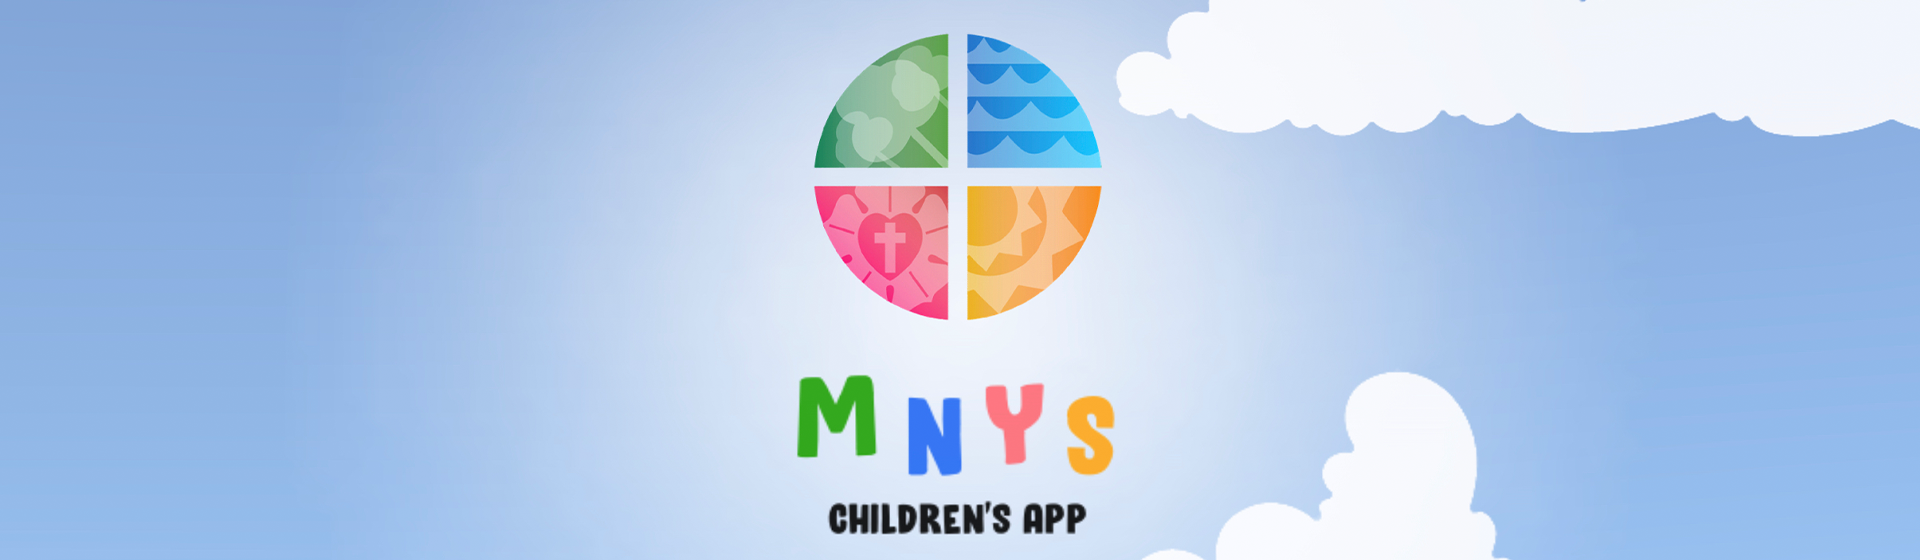 Childrens_App_Banner